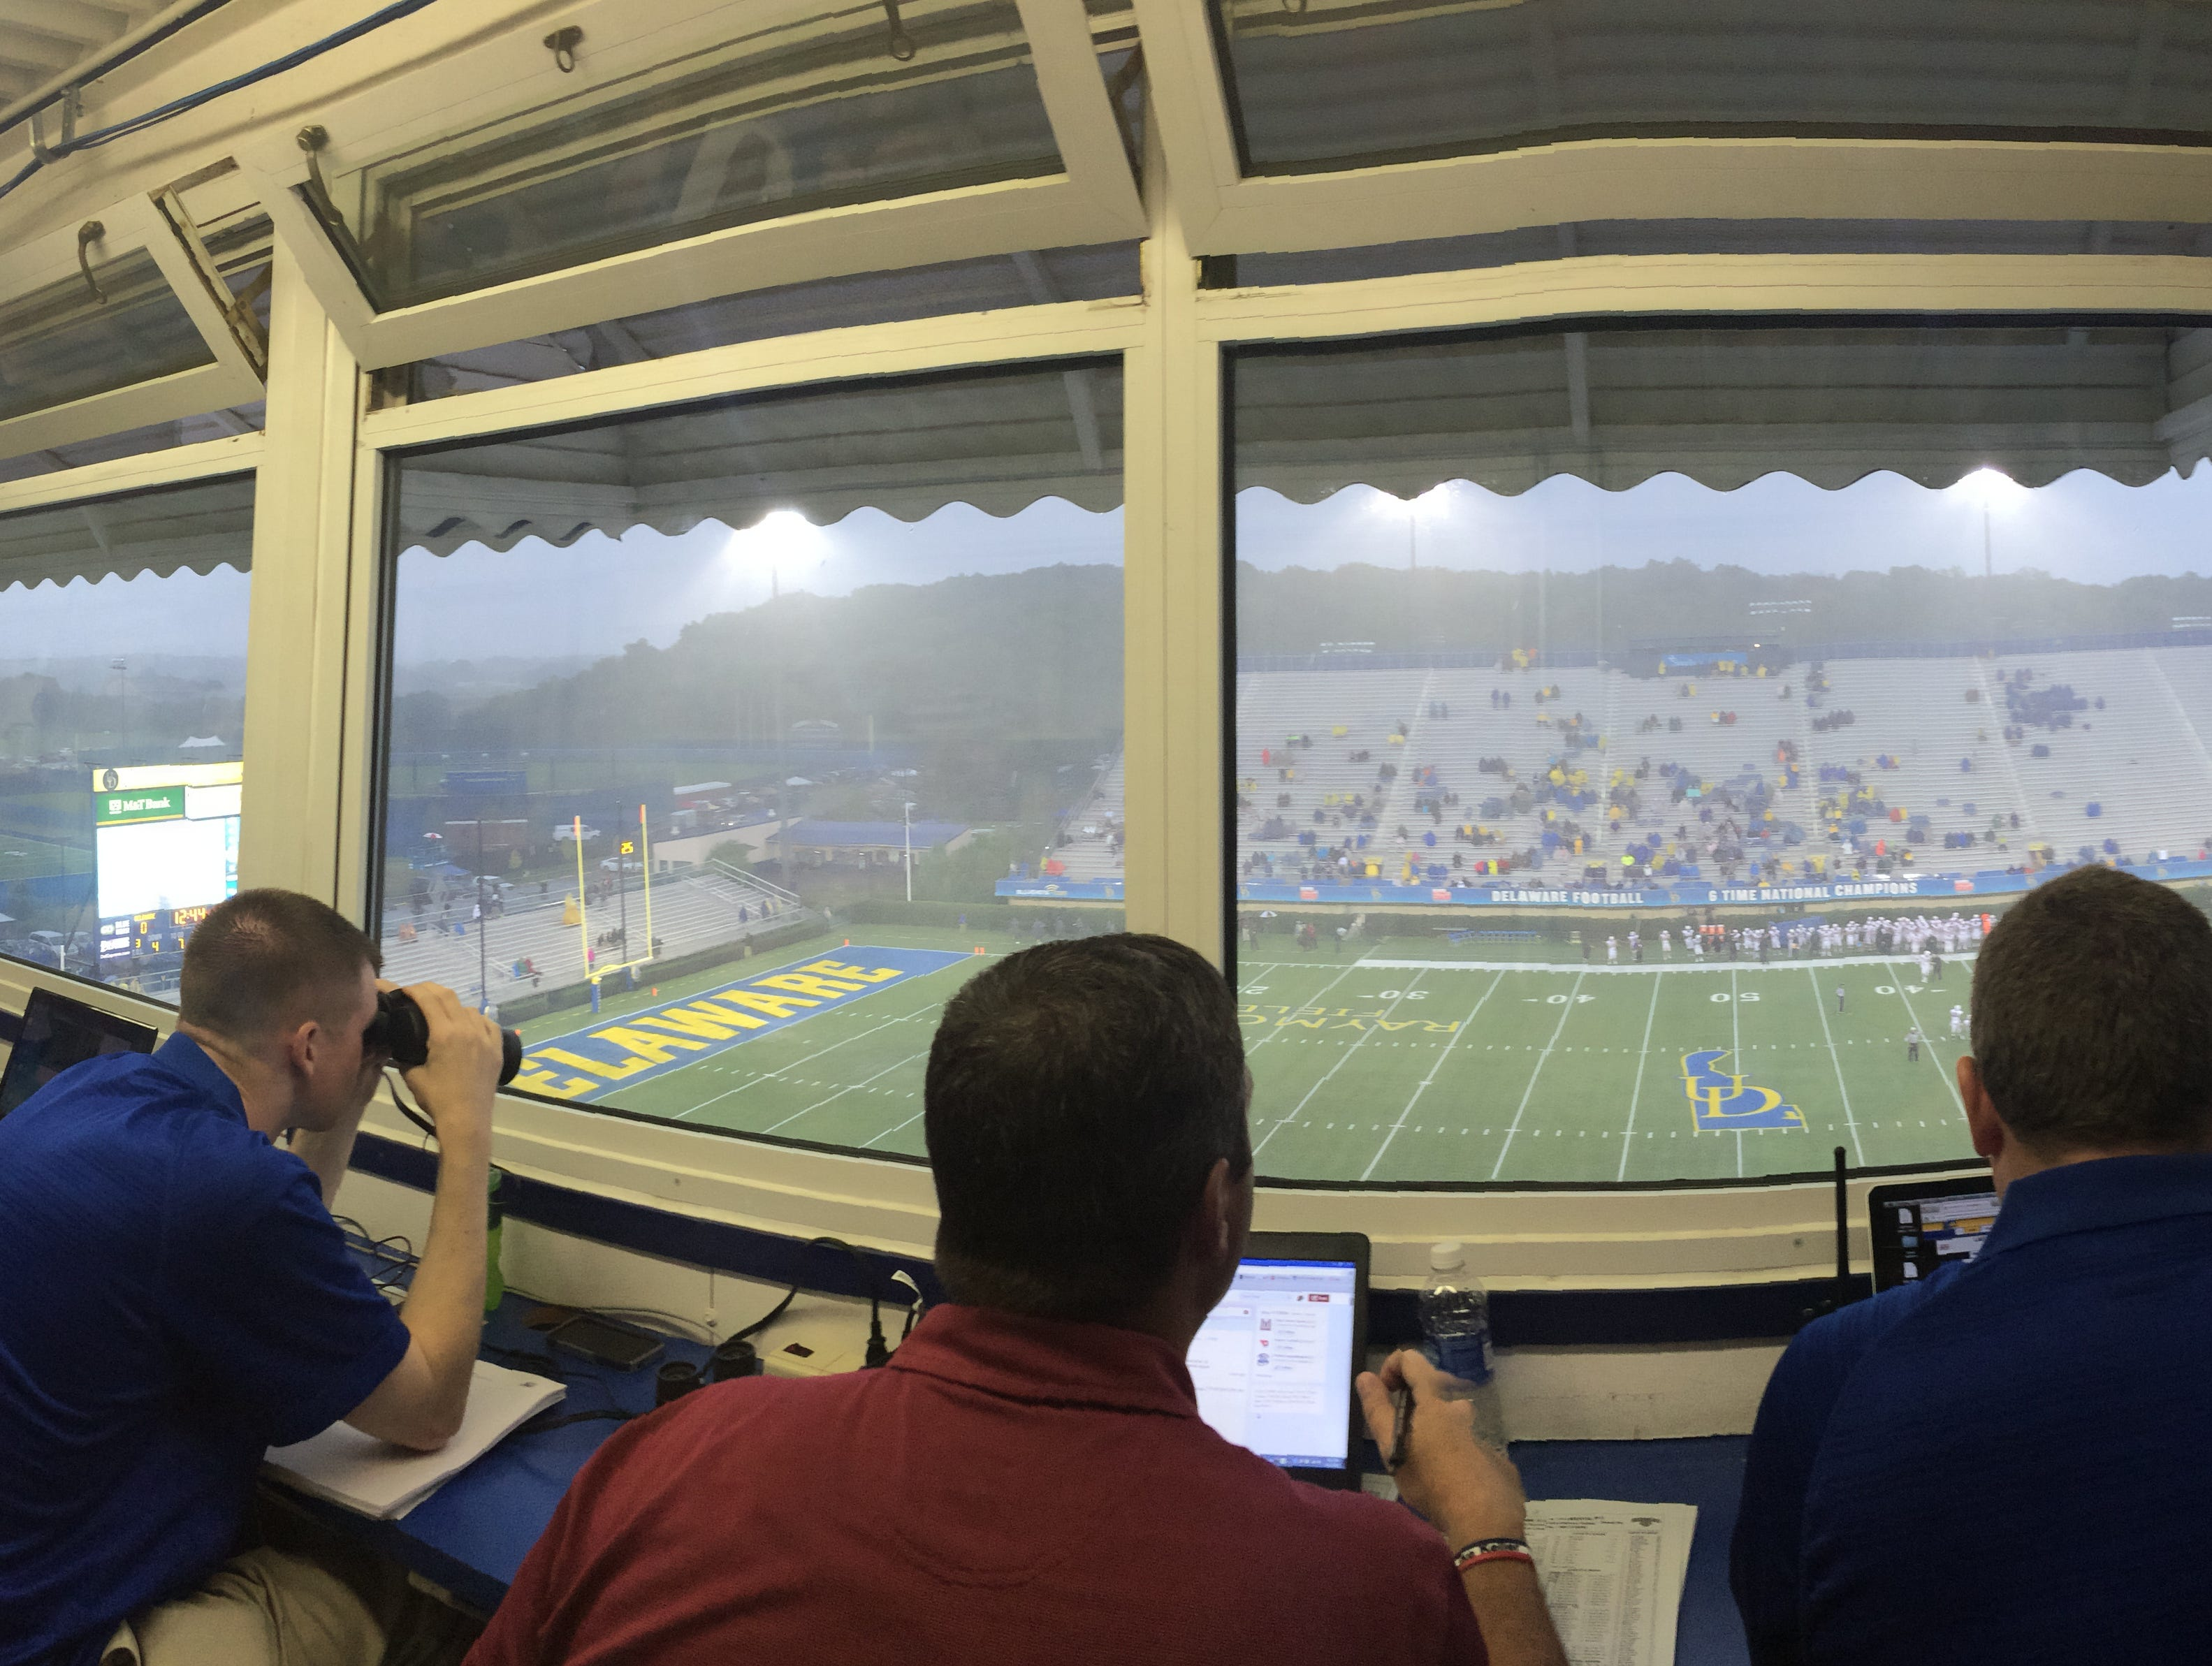 With wrecking ball coming, admiring best games from Delaware Stadium's press box